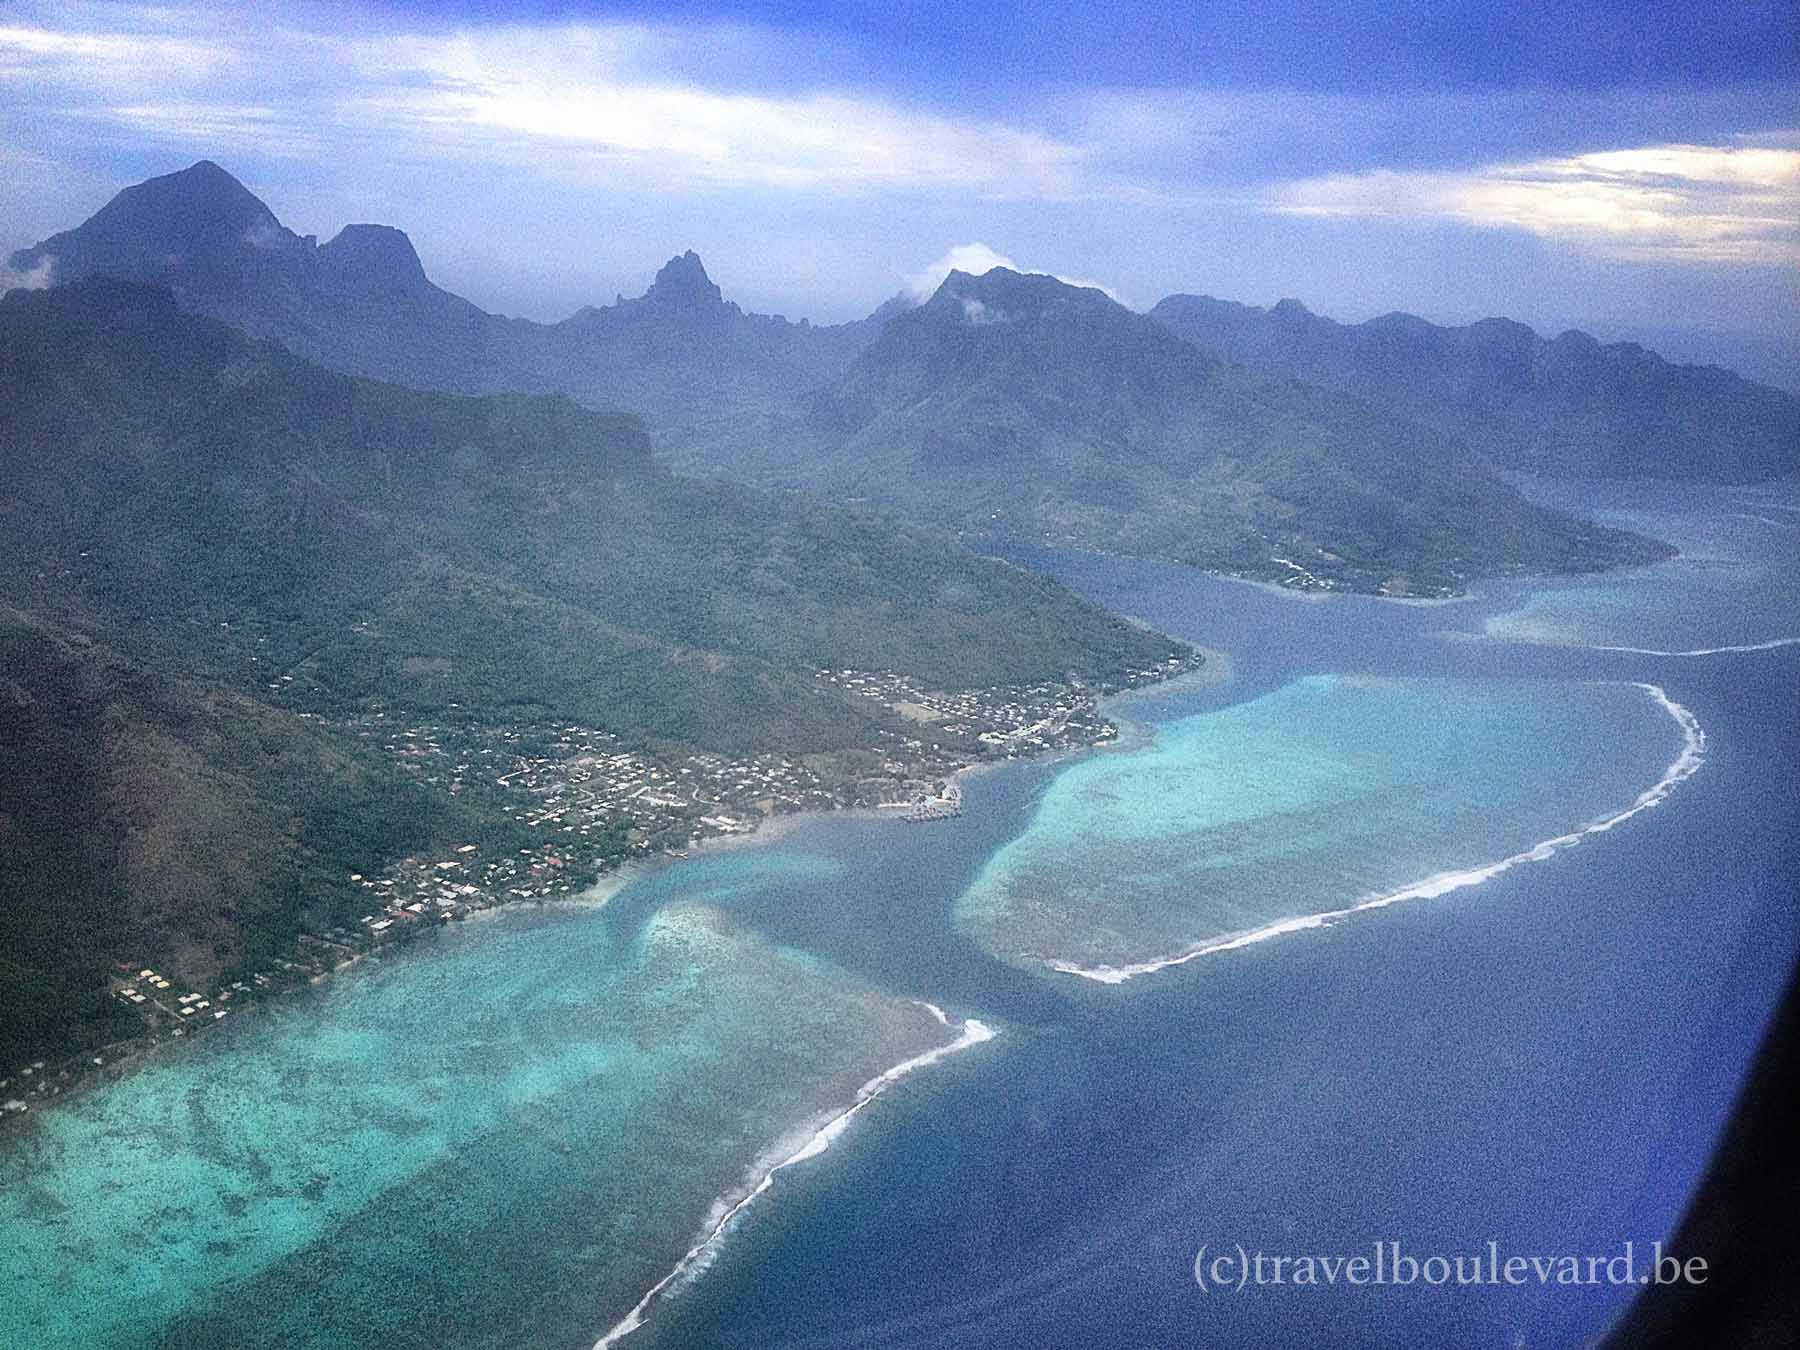 tahiti from the sky